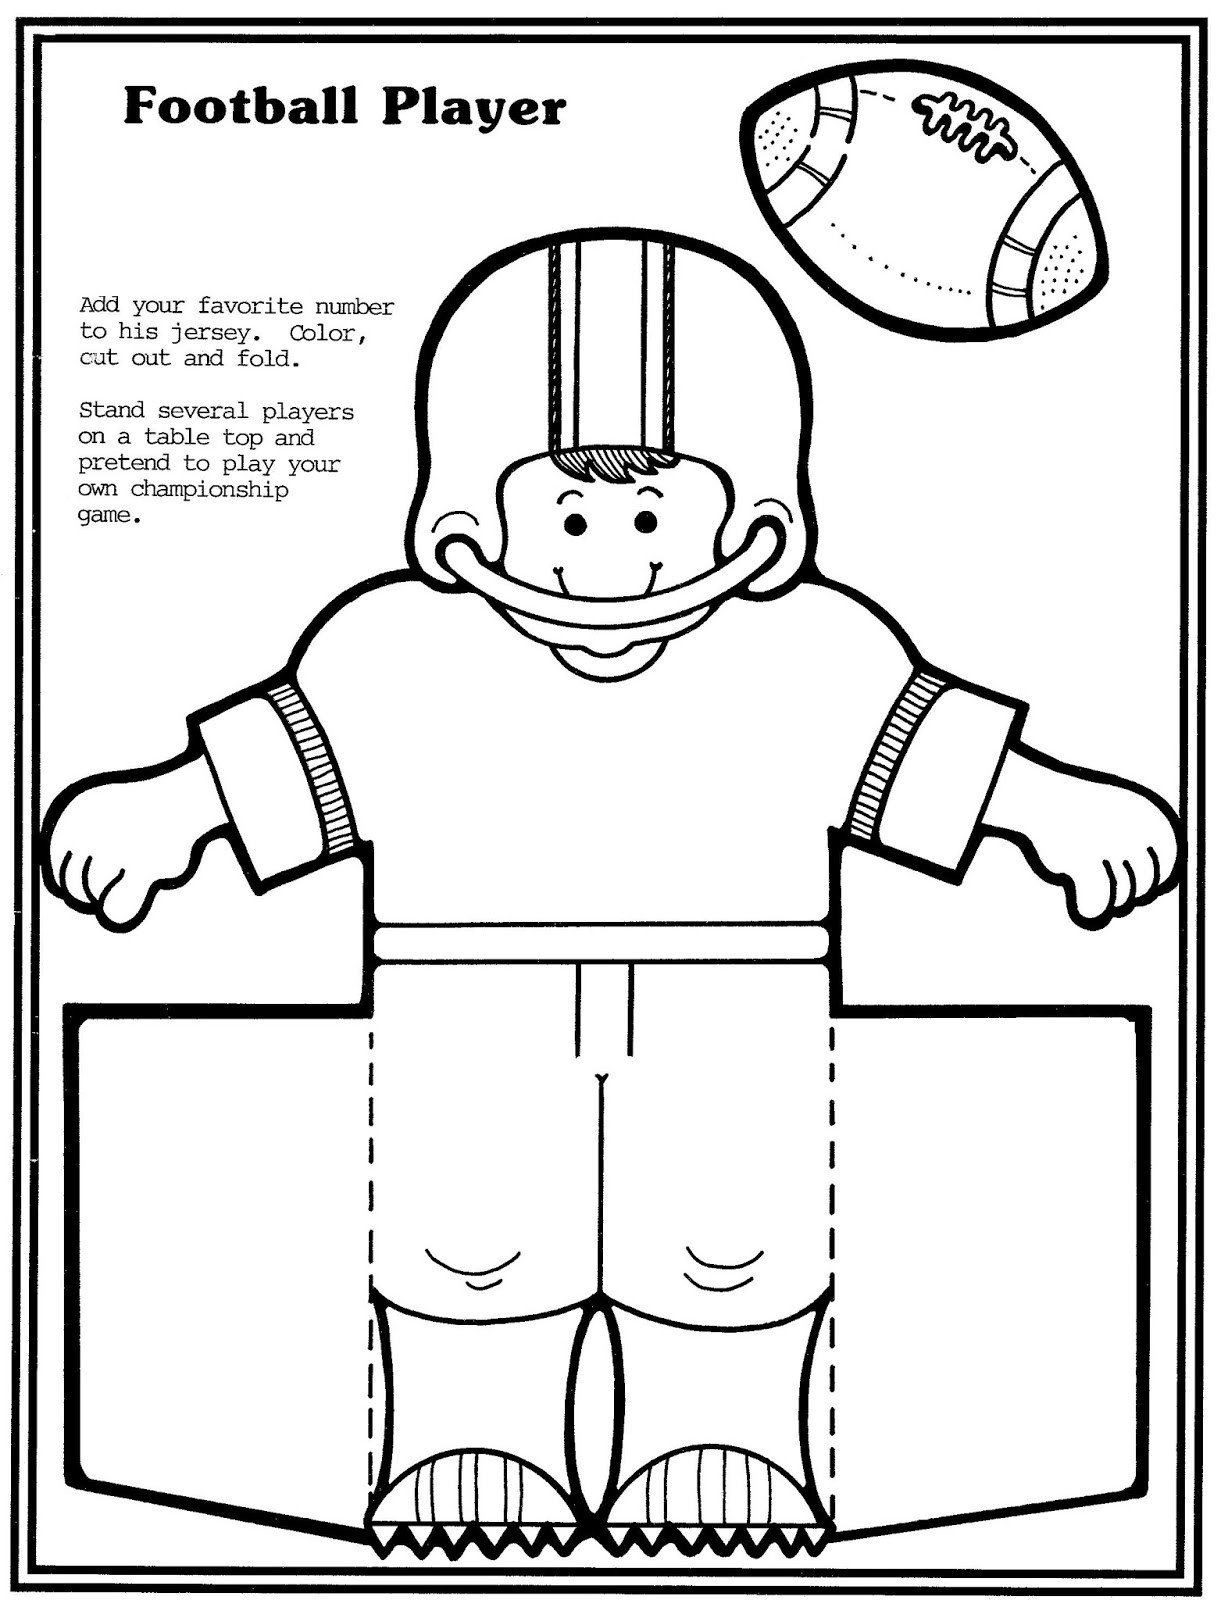 Football Player Template Printable Mostly Paper Dolls too Football Player and Cheerleader